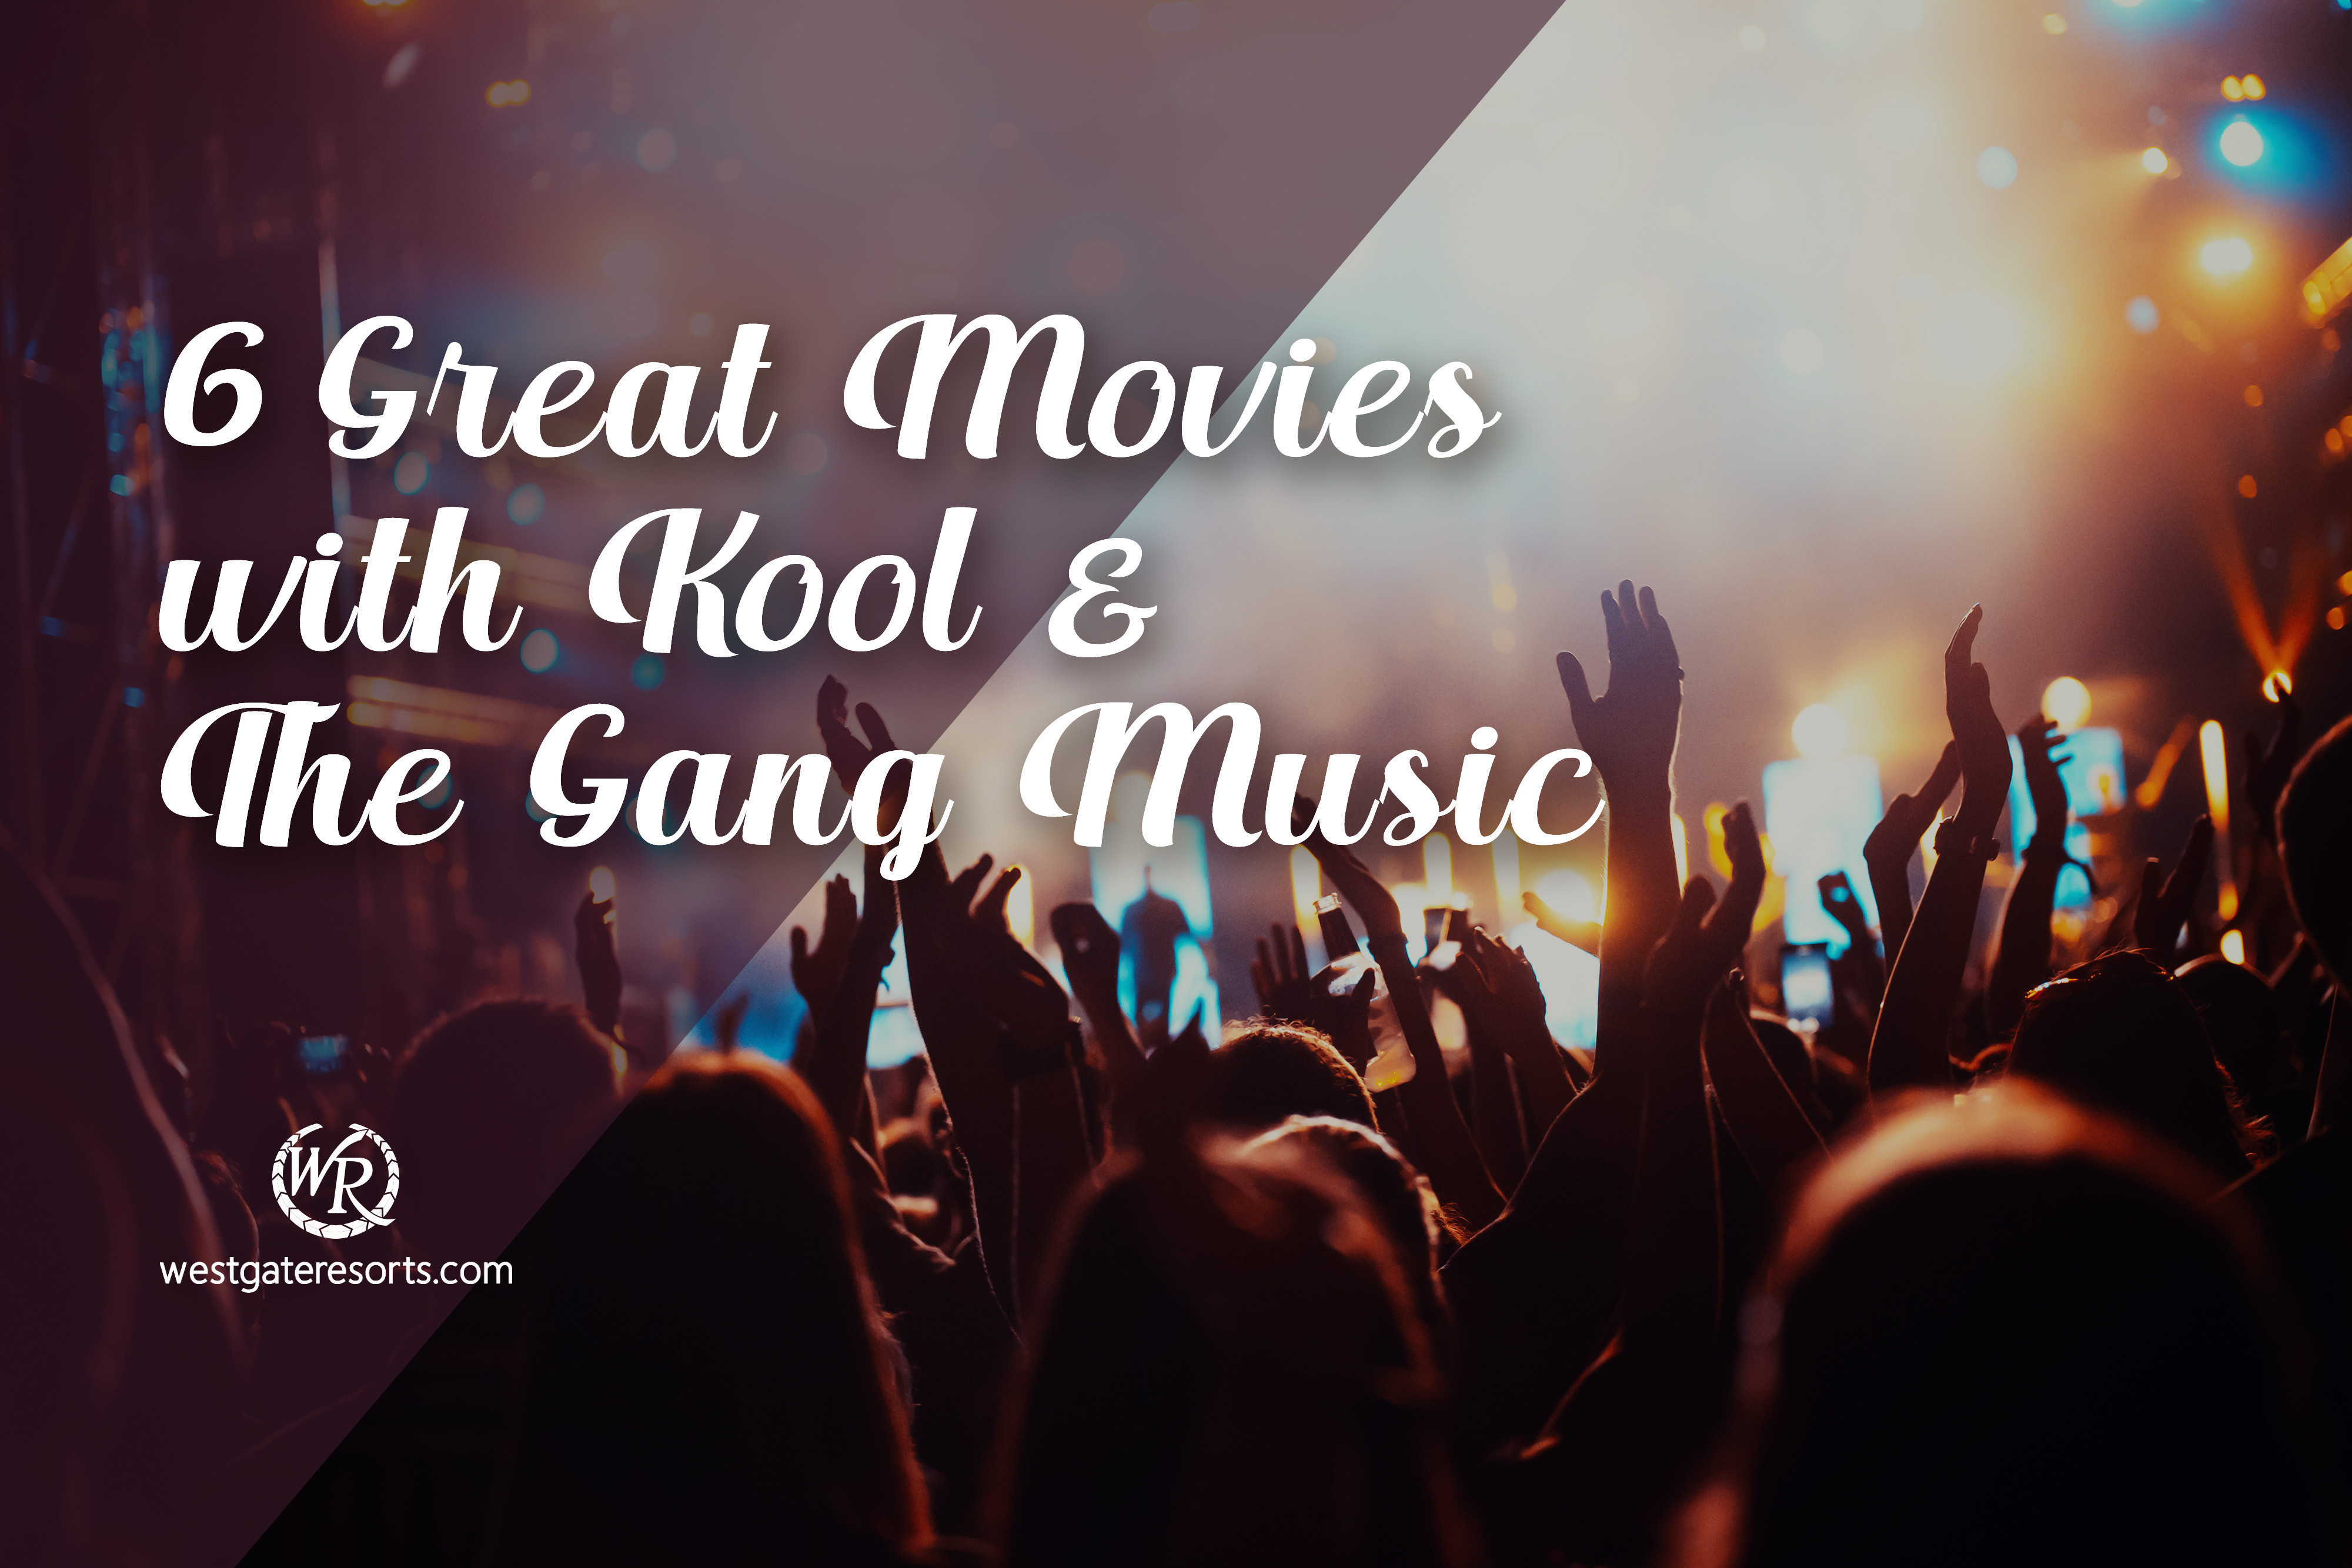 6 Great Movies with Kool & The Gang Music - Westgate Resorts Travel Blog